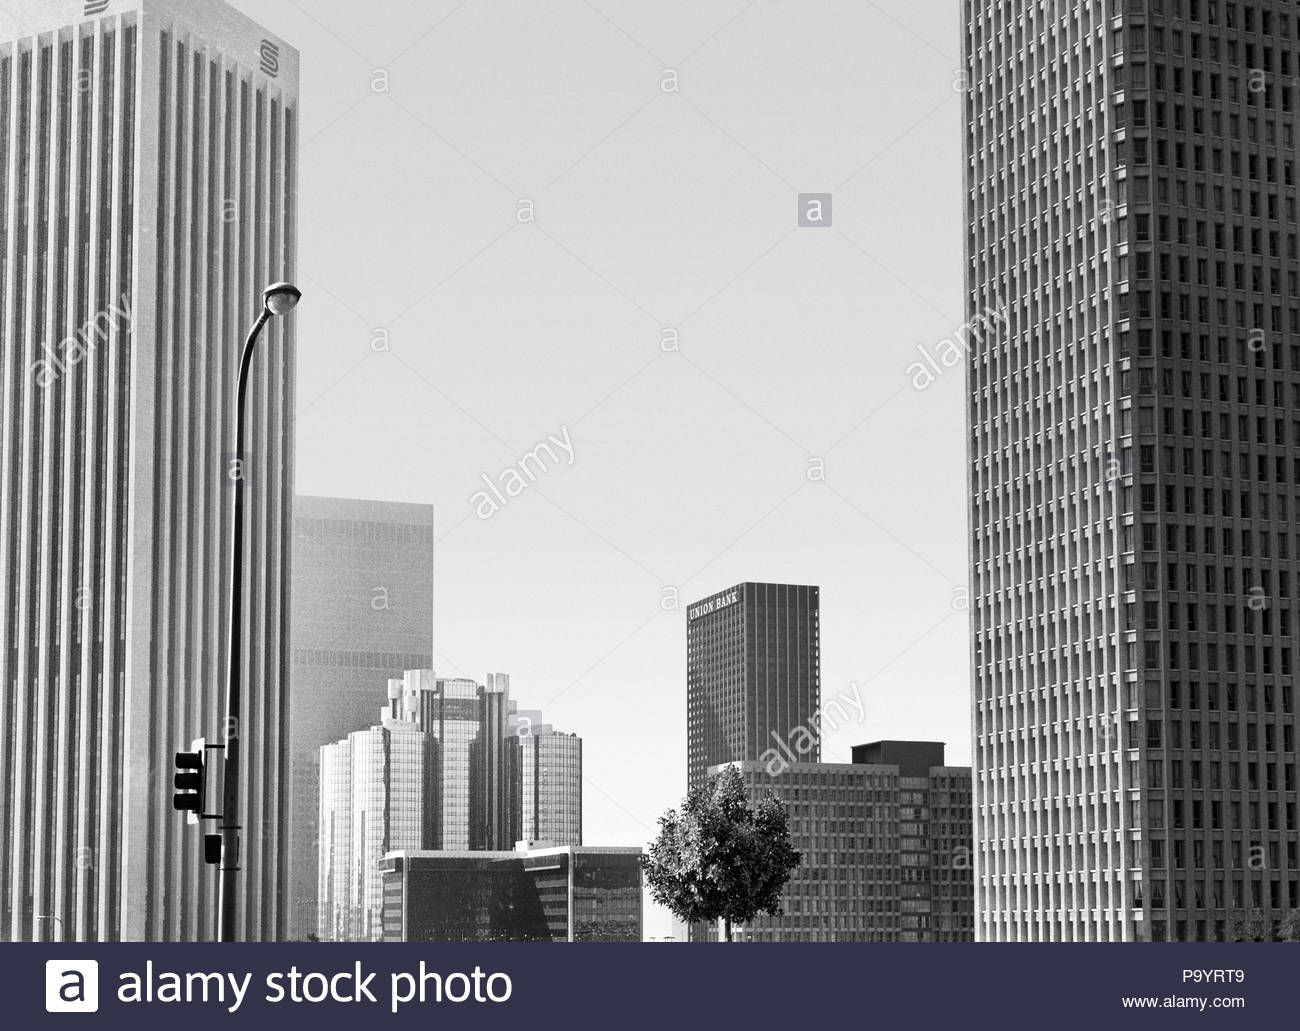 Download This Stock Image 1970s Downtown Skyline Los Angeles California Usa Asp Jo17343 Asp001 Hars Skyscr Los Angeles California Skyscraper California Usa